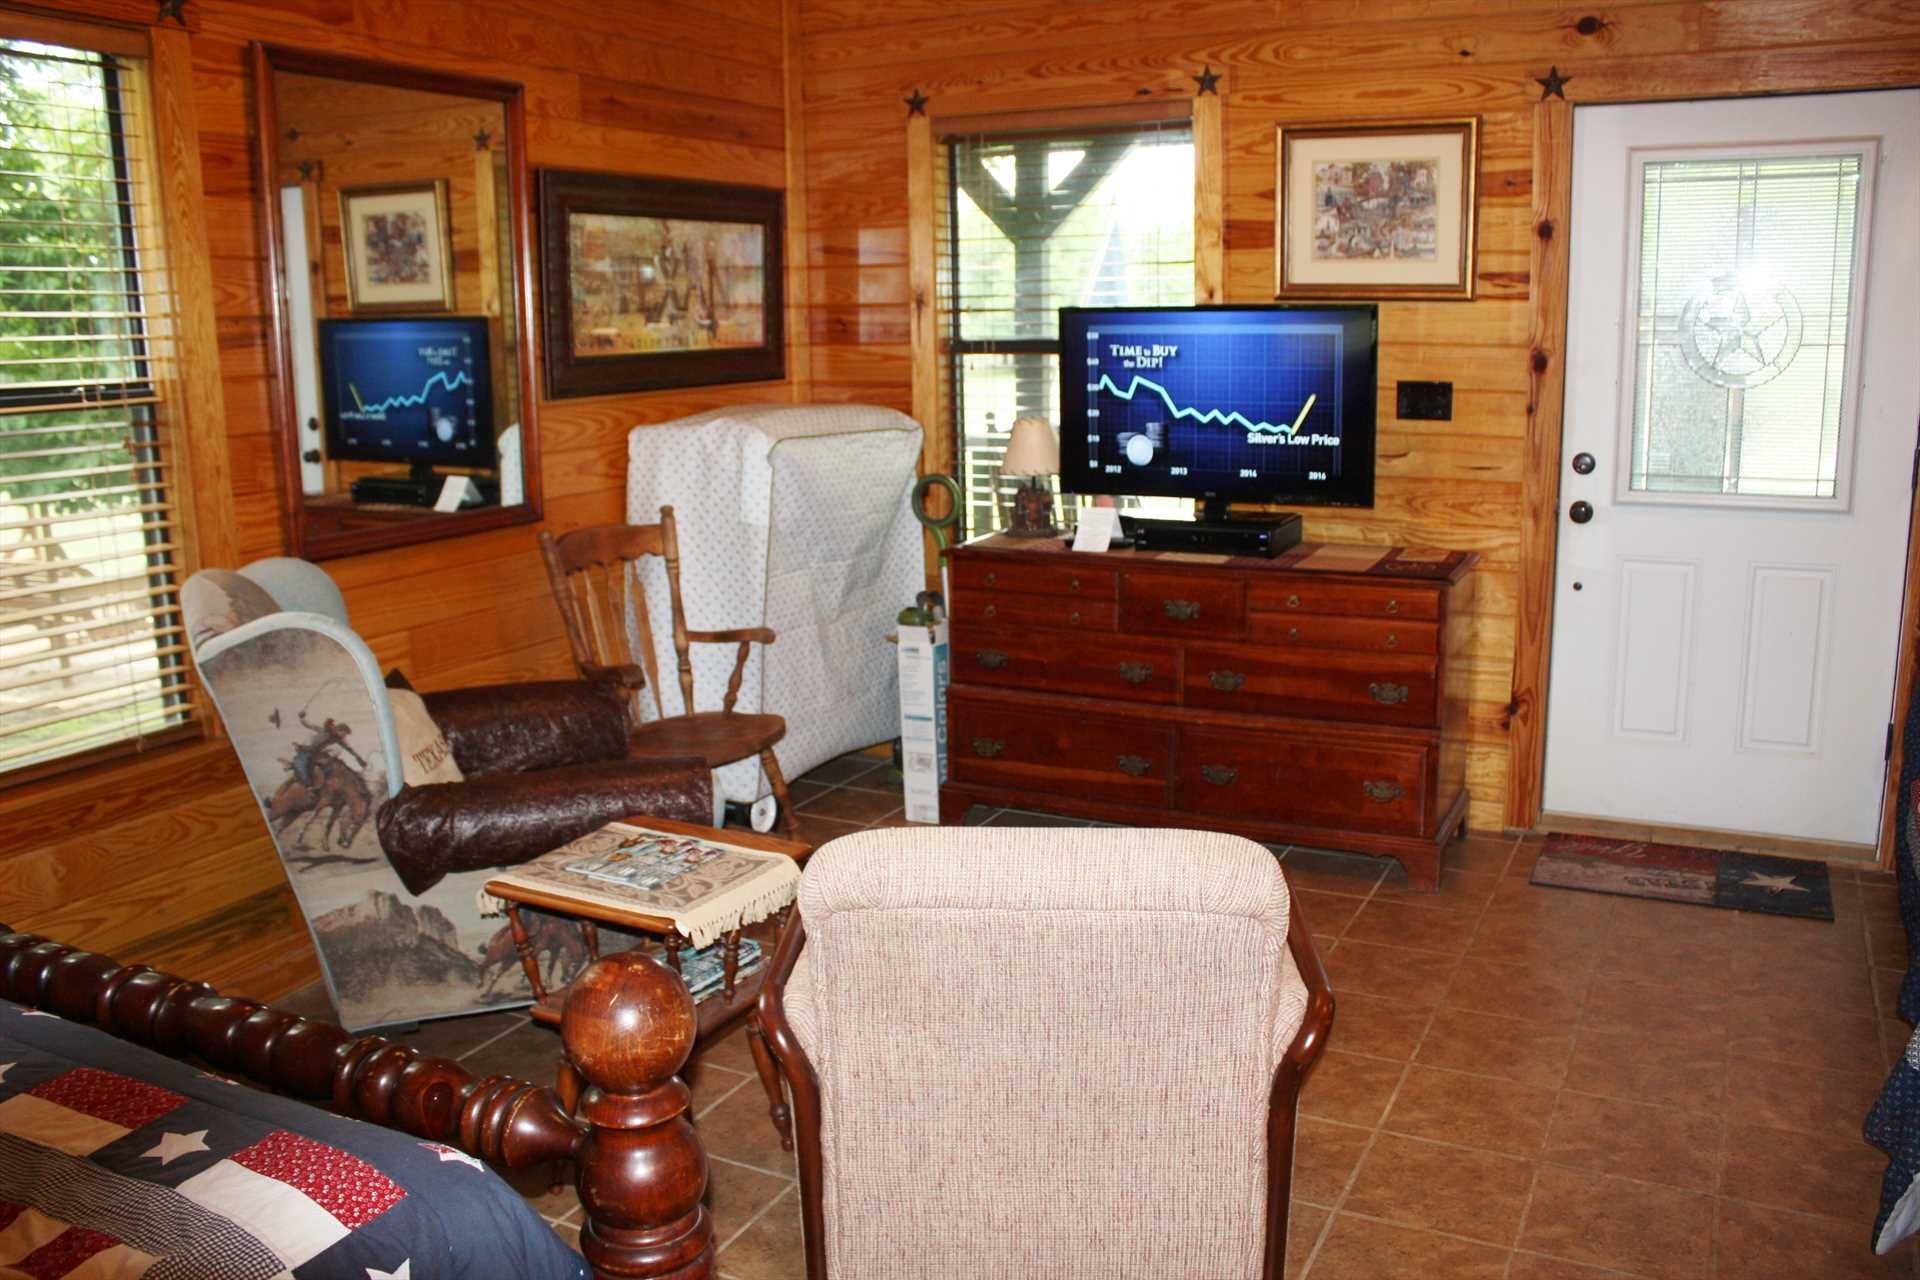 Matching woodwork and flooring give the cabin a warm glow, which is also equipped with satellite TV, wireless Internet, and super-comfy AC and heating.